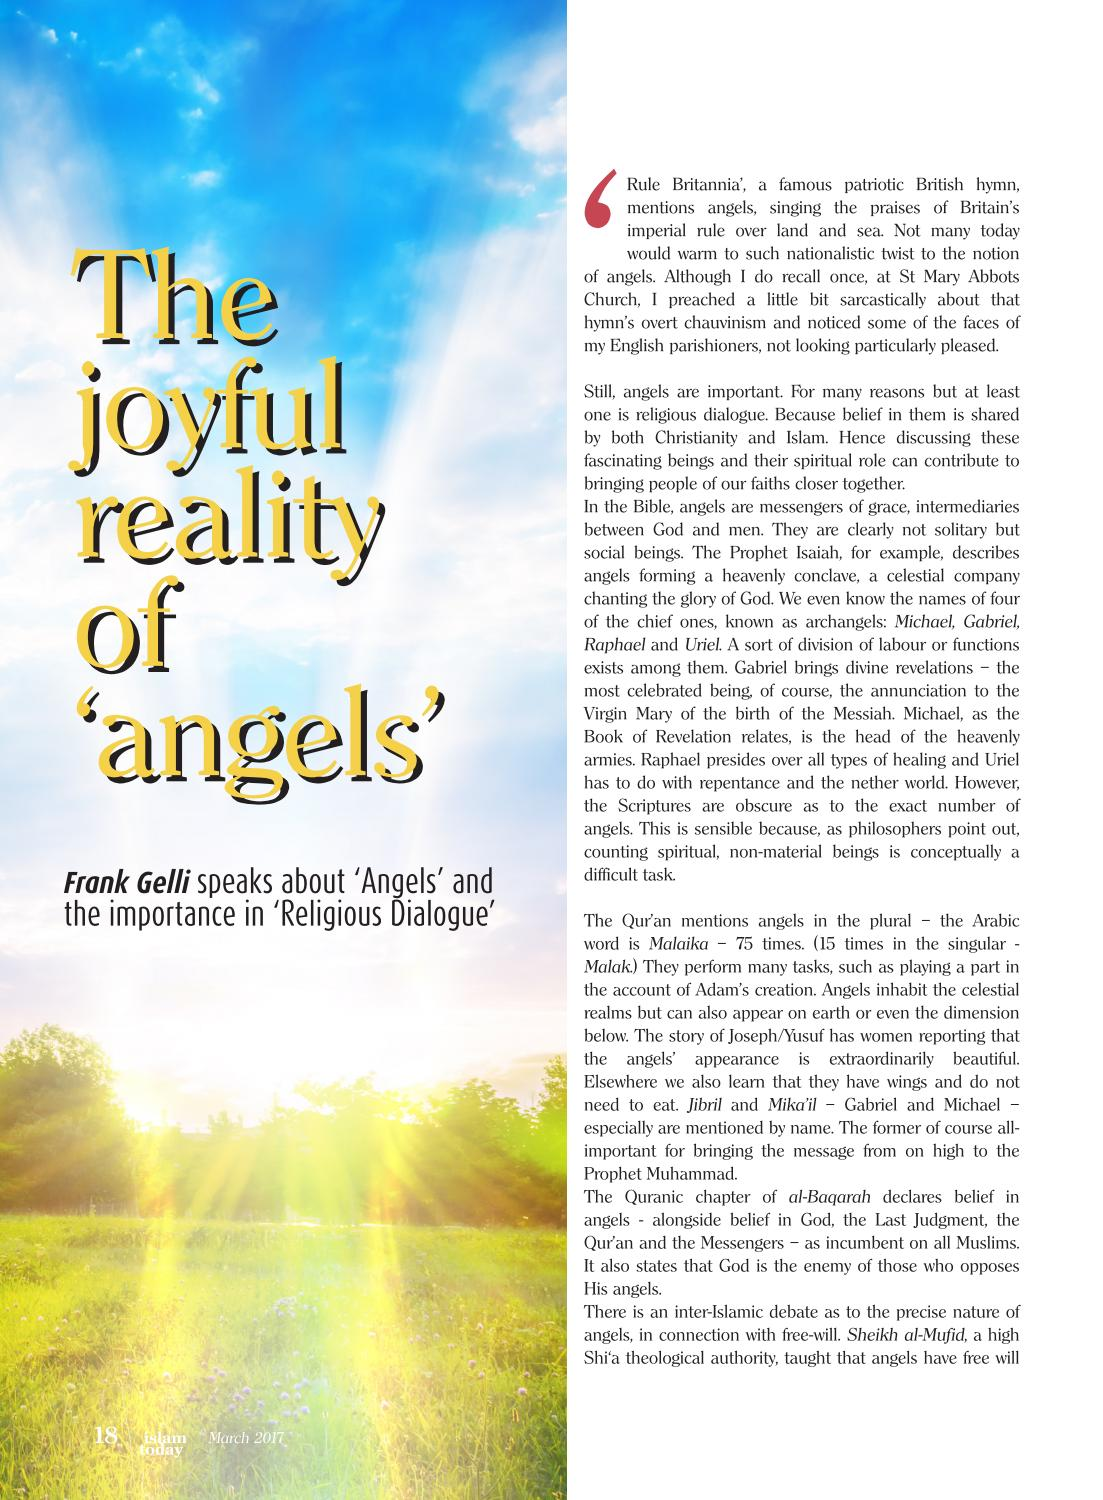 islam today issue 45 March 2017 by islam today magazine UK - issuu